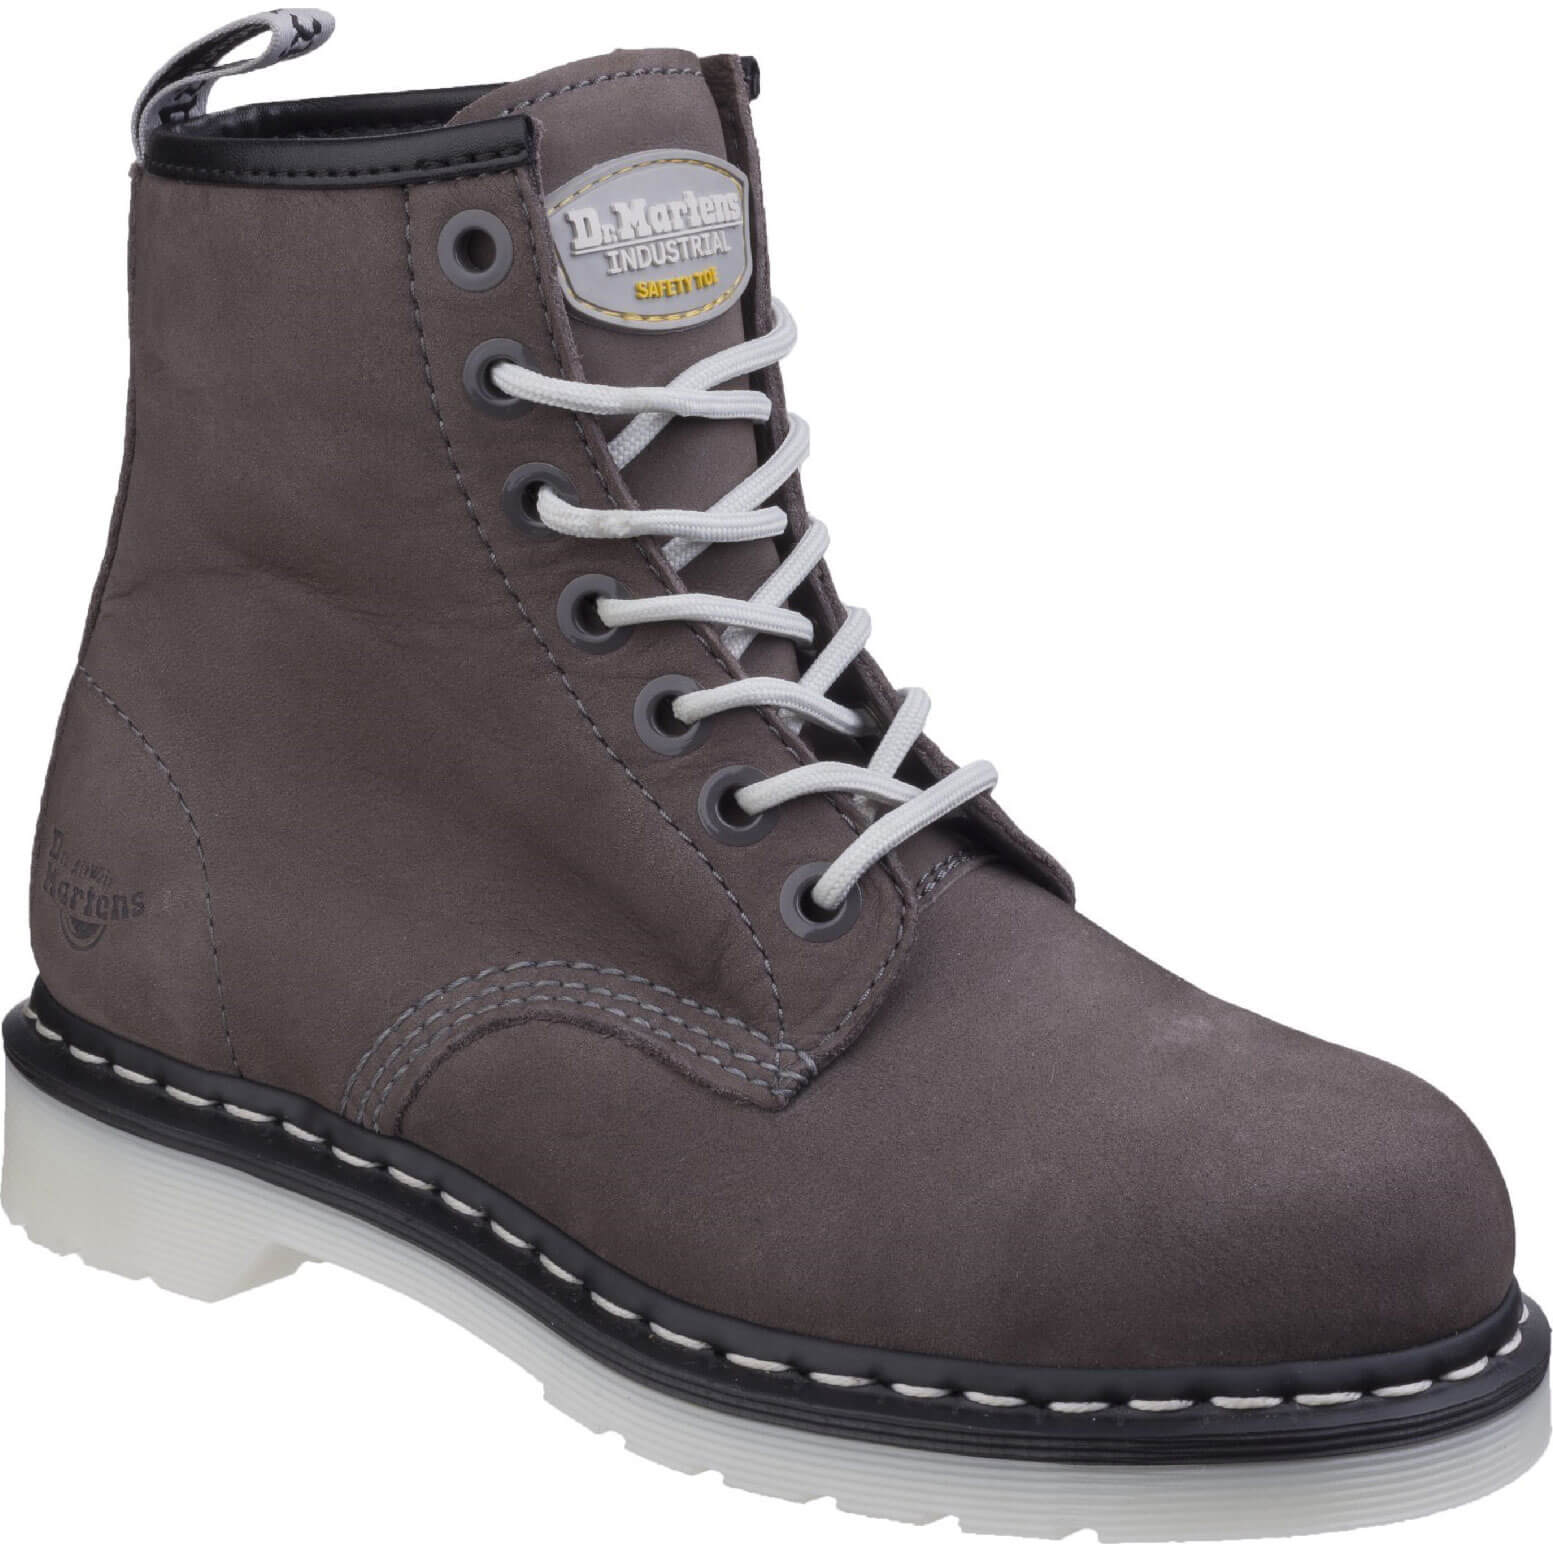 CHEAP Dr Martens Mens Maple Classic Safety Work Boots Grey Size 5 – Men's Footwear